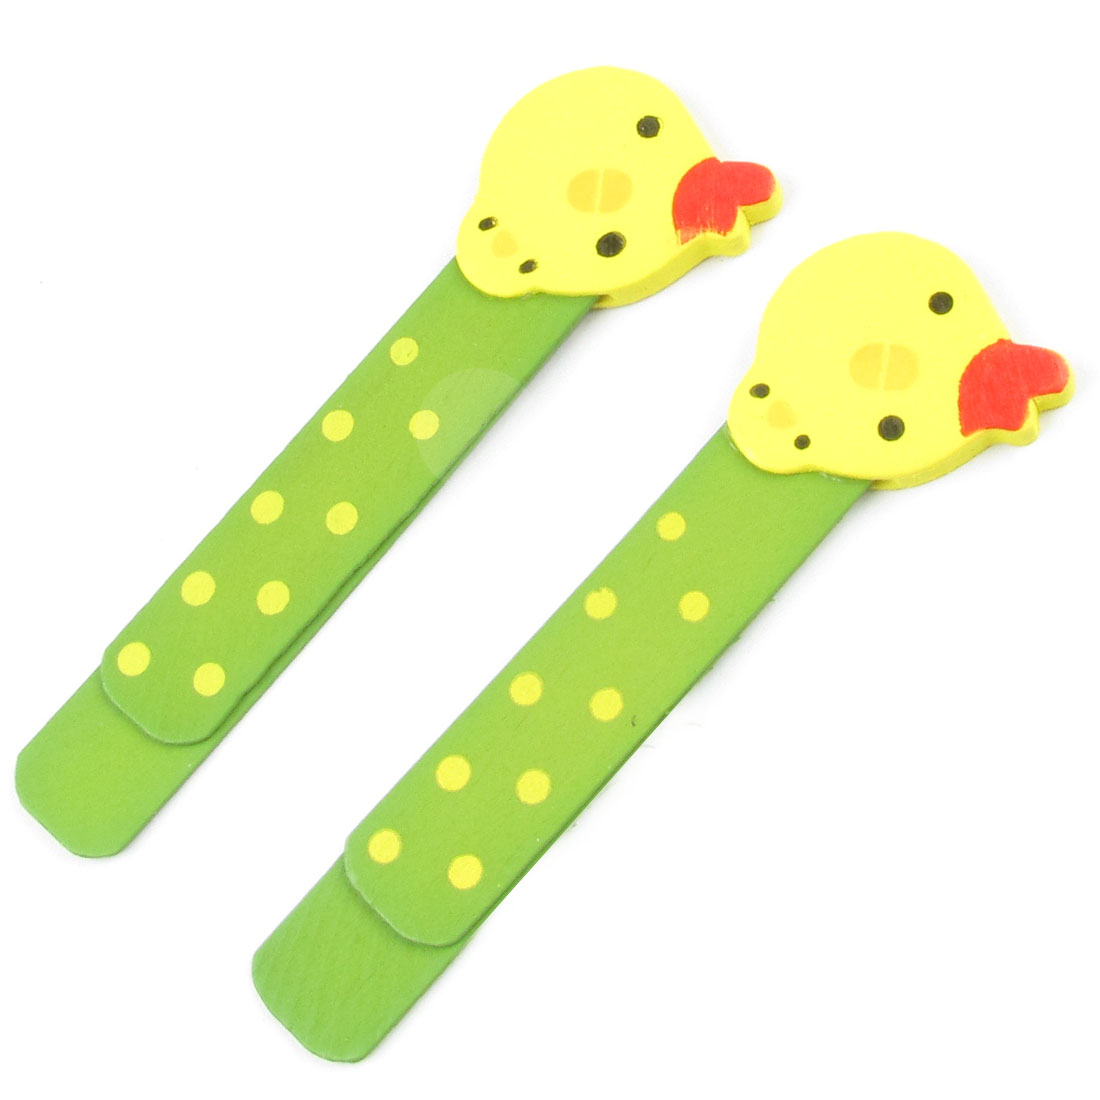 2 Pcs Green Wooden Chicken Head Design Cartoon Ruler Bookmark Book Clip